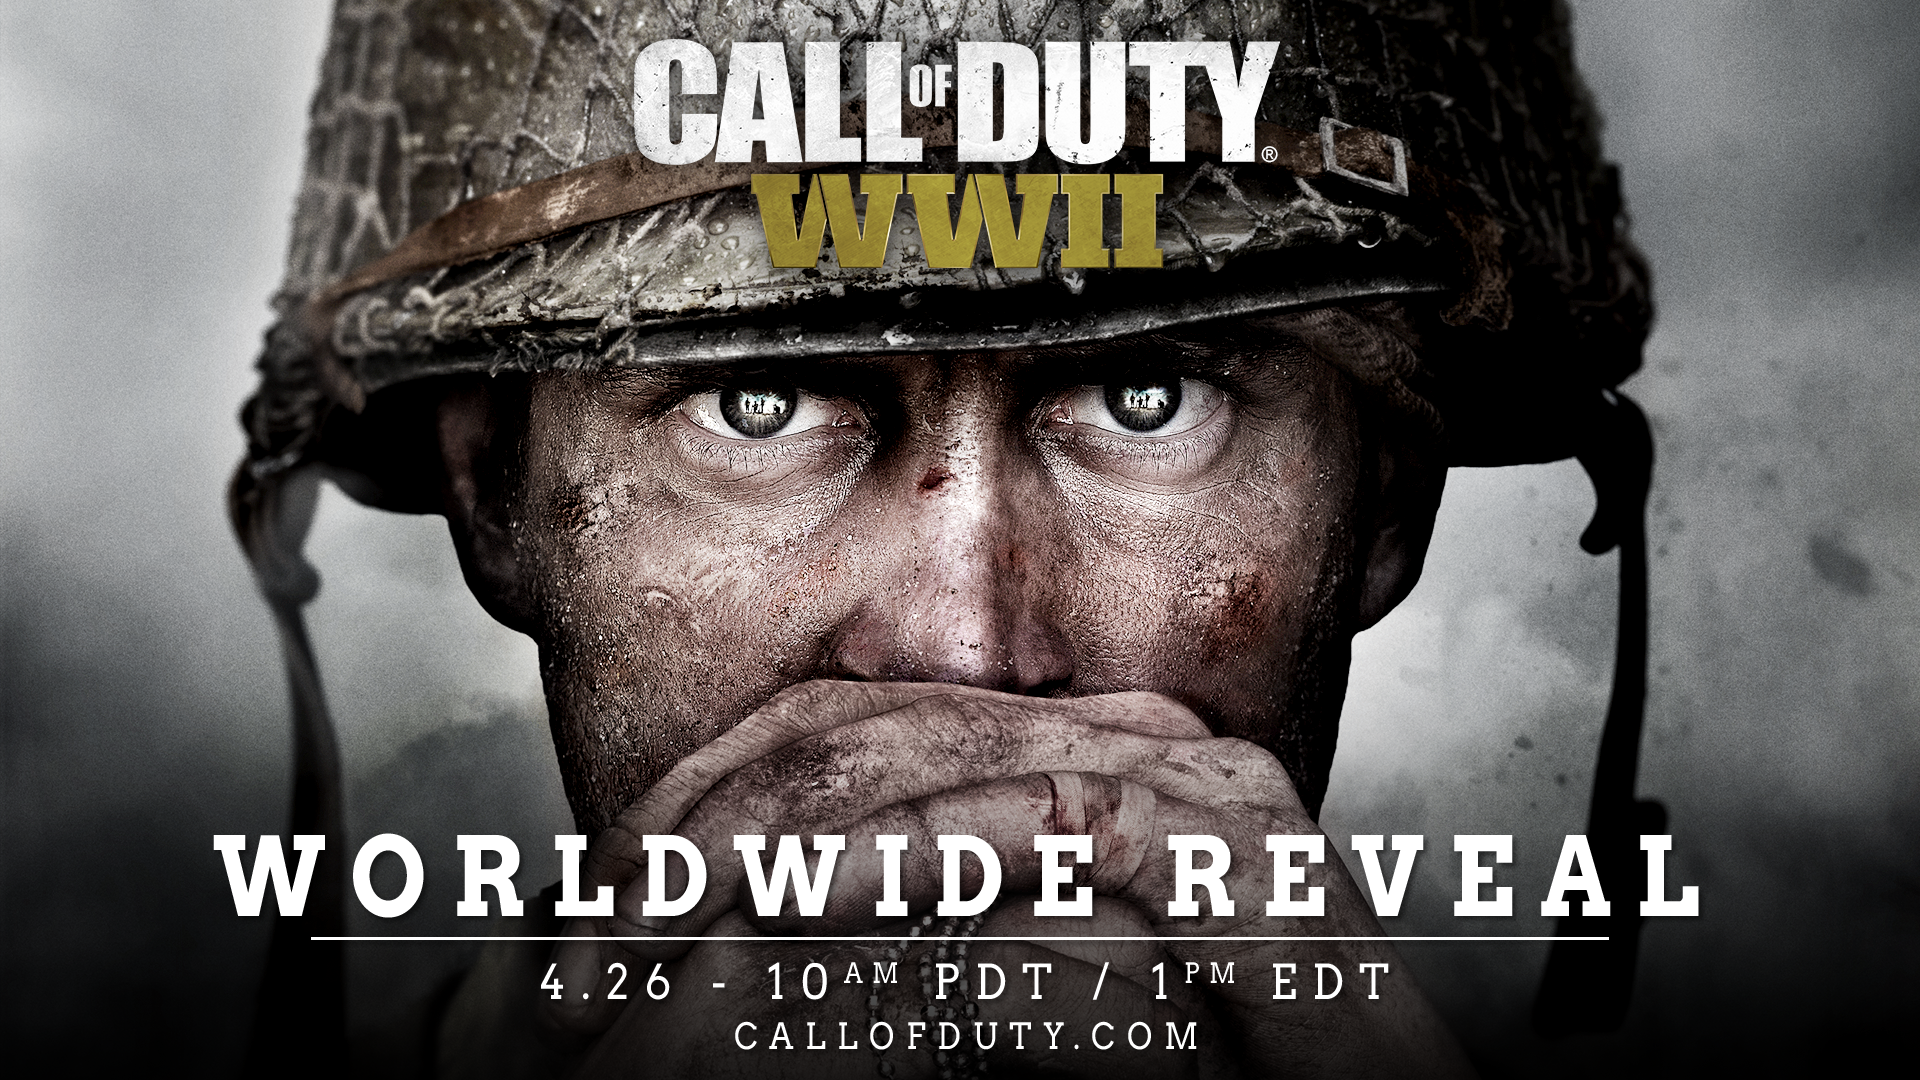 the-newest-call-of-duty-game-takes-place-during-world-war-ii